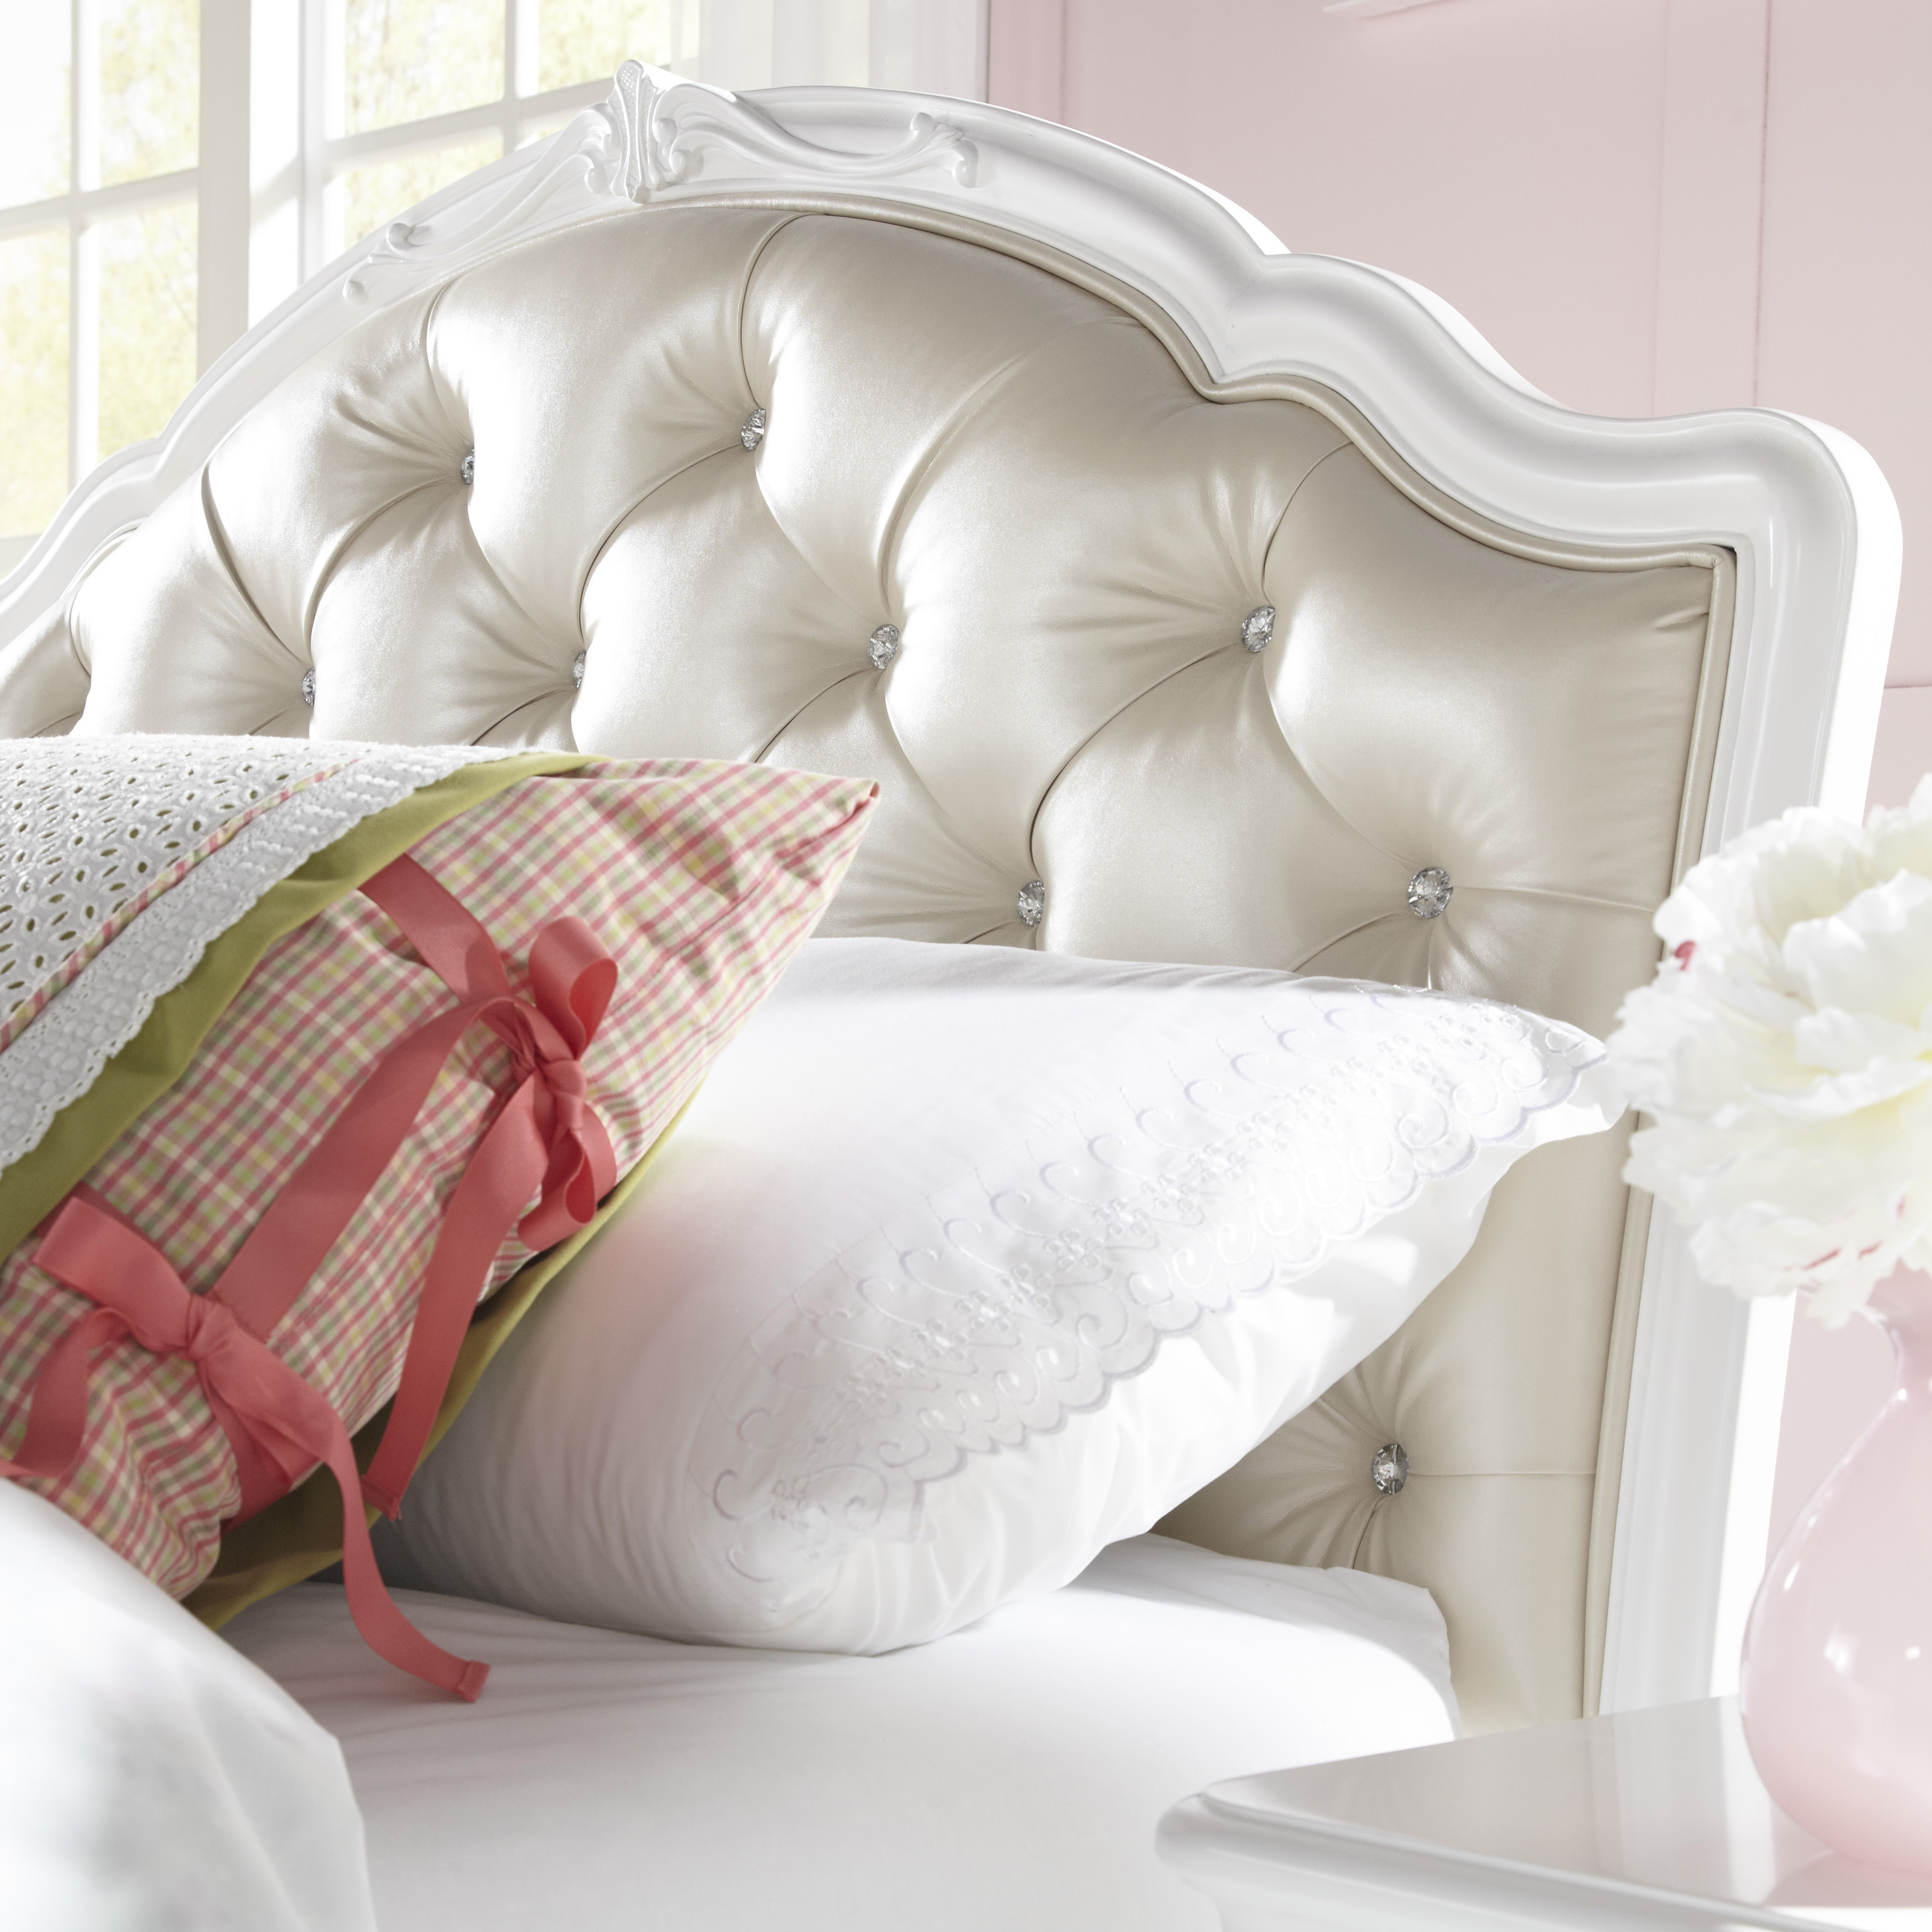 to patterned headboard wall plus your fabric nightstands contemporary shape ideas bedskirts eclectic best headboards sculpture bedside small for orange cool table lamps lamp cozy elephant trim walls nightstand bedroom floral bed upholstered with also duvet choices white and pink design in twin